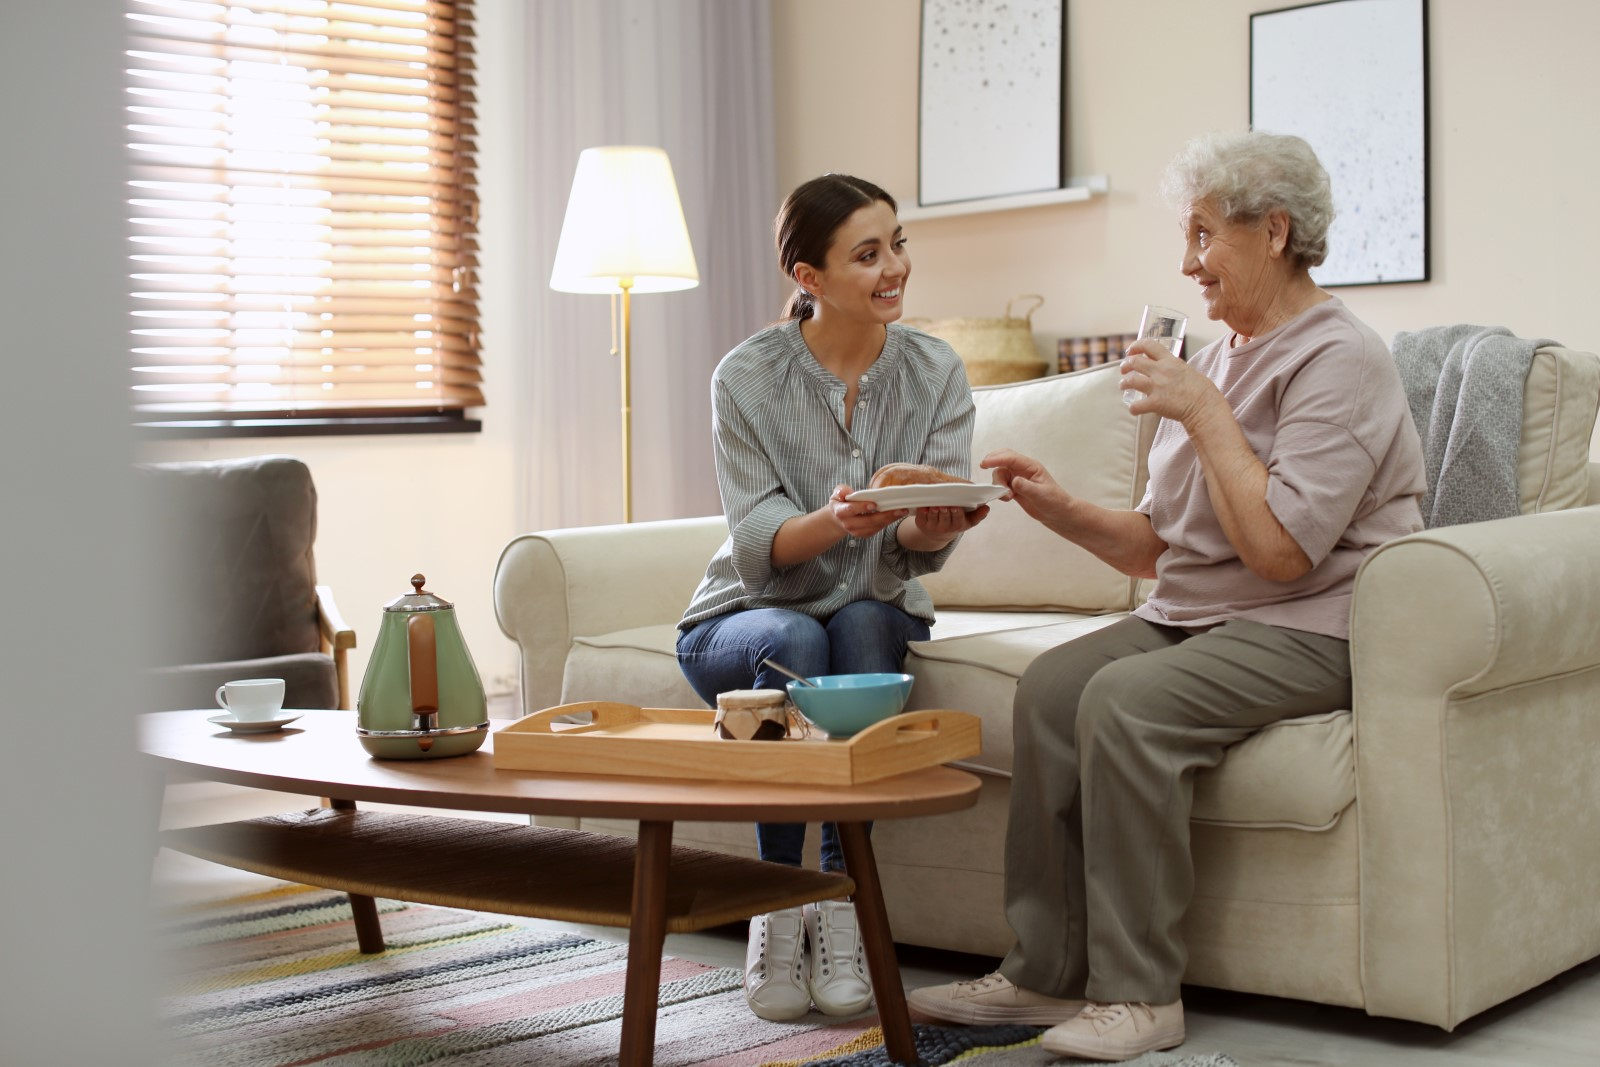 A smiling younger woman holds a smiling older woman. Learn more about Georgetown Home Care's respite home care services.